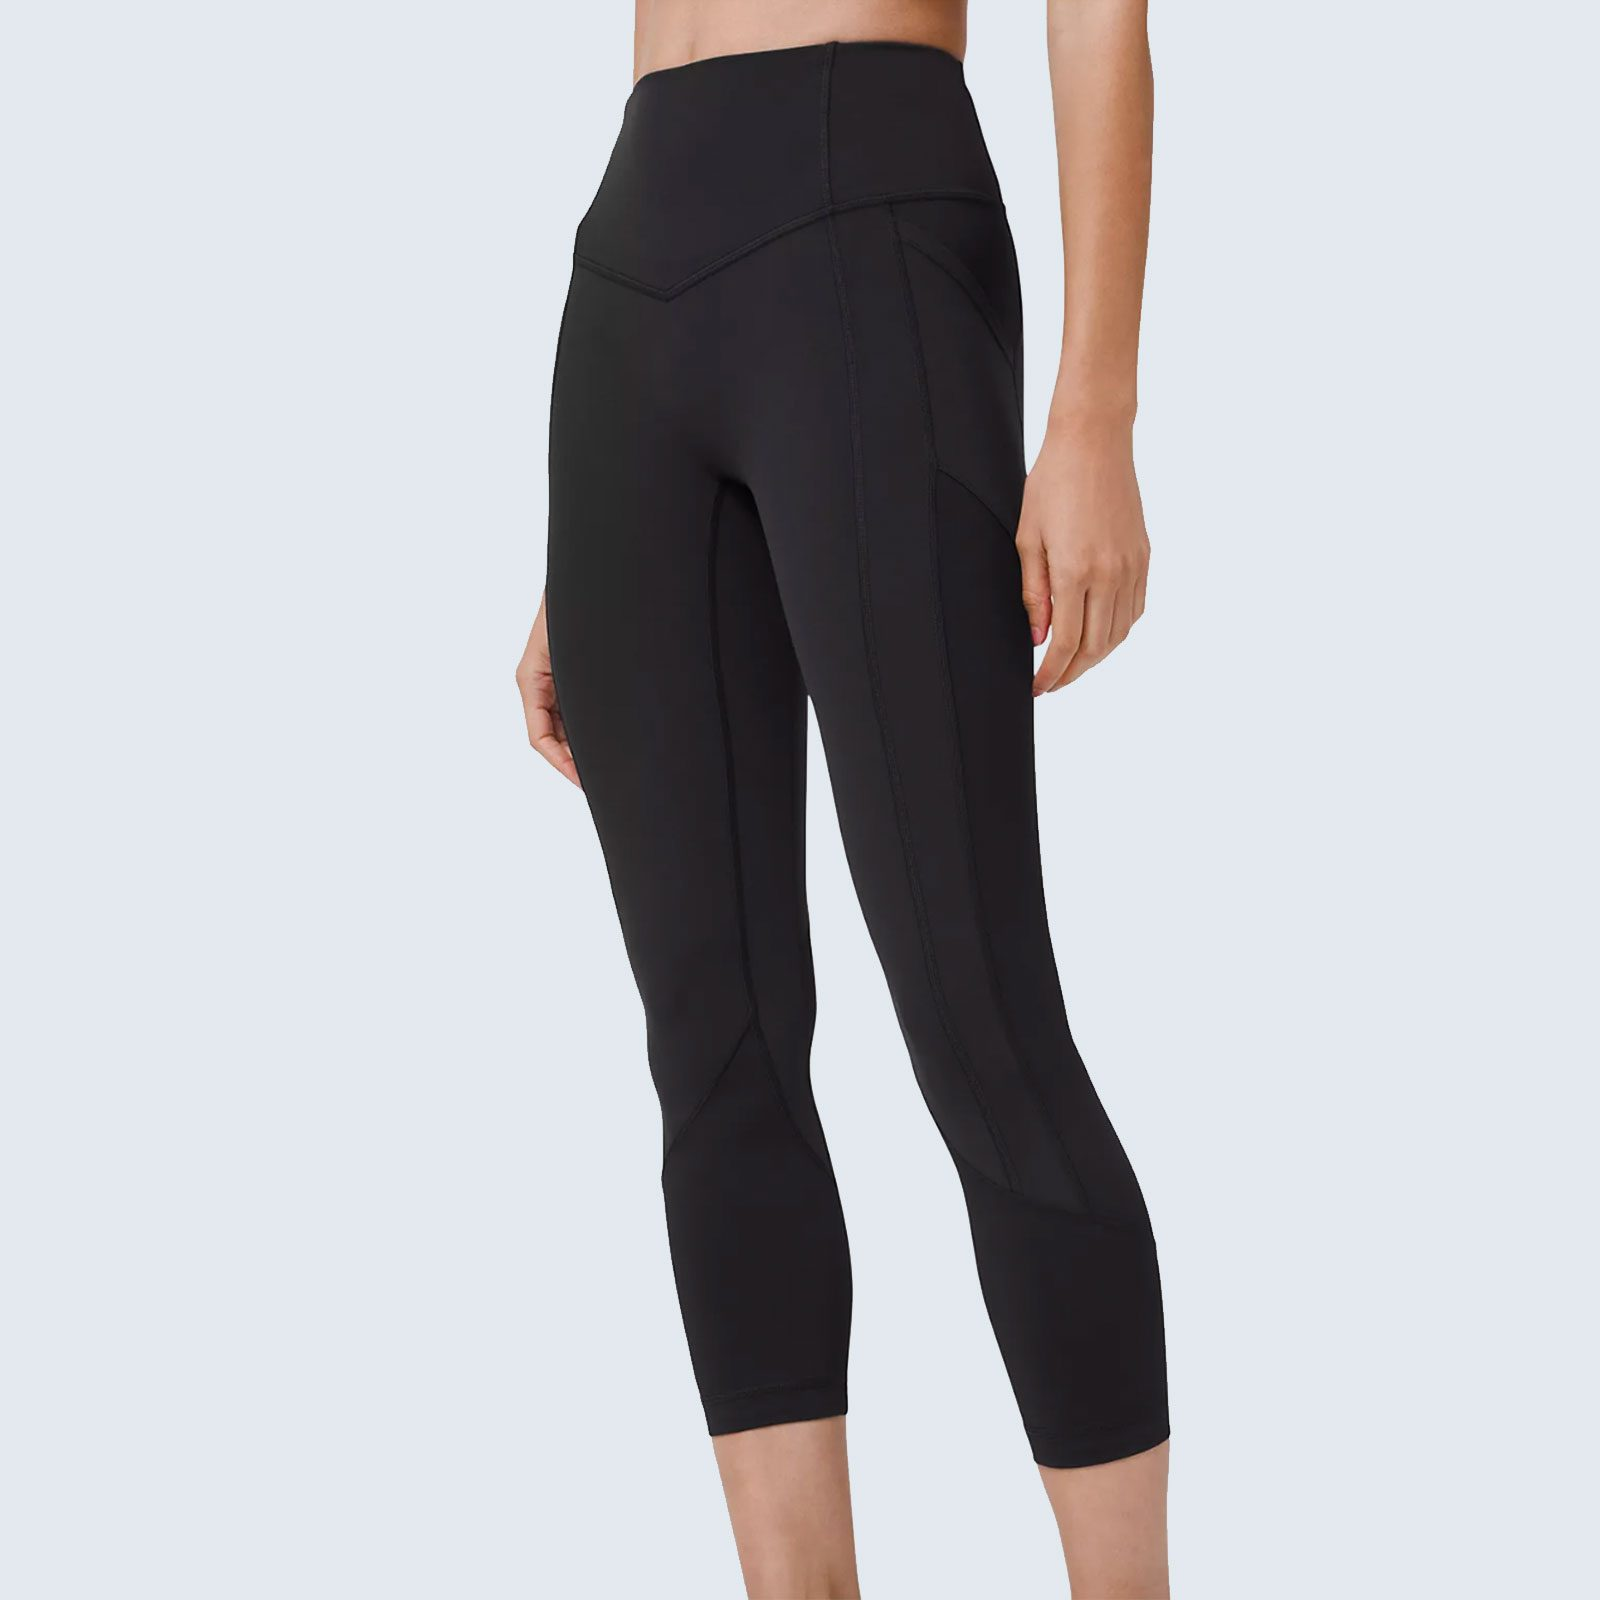 Best Lululemon Butt-Lifting Leggings